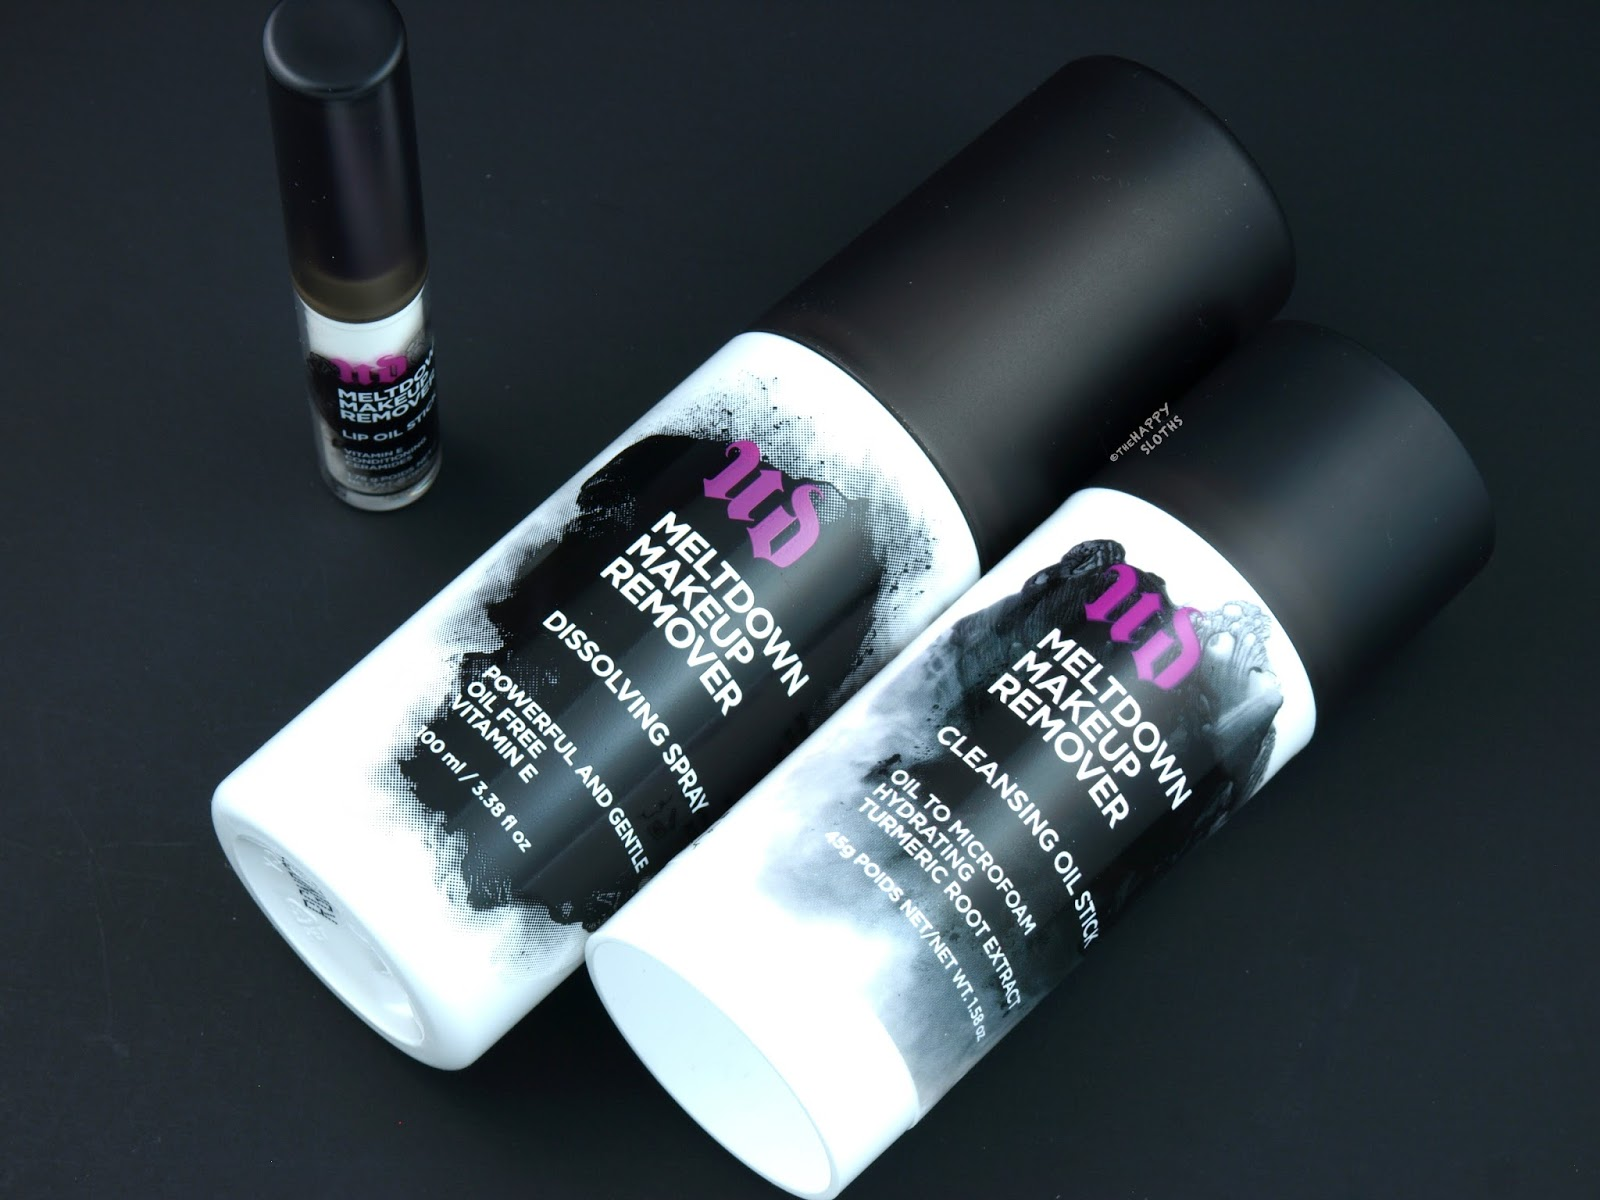 Urban Decay Meltdown Makeup Remover Dissolving Spray: Review